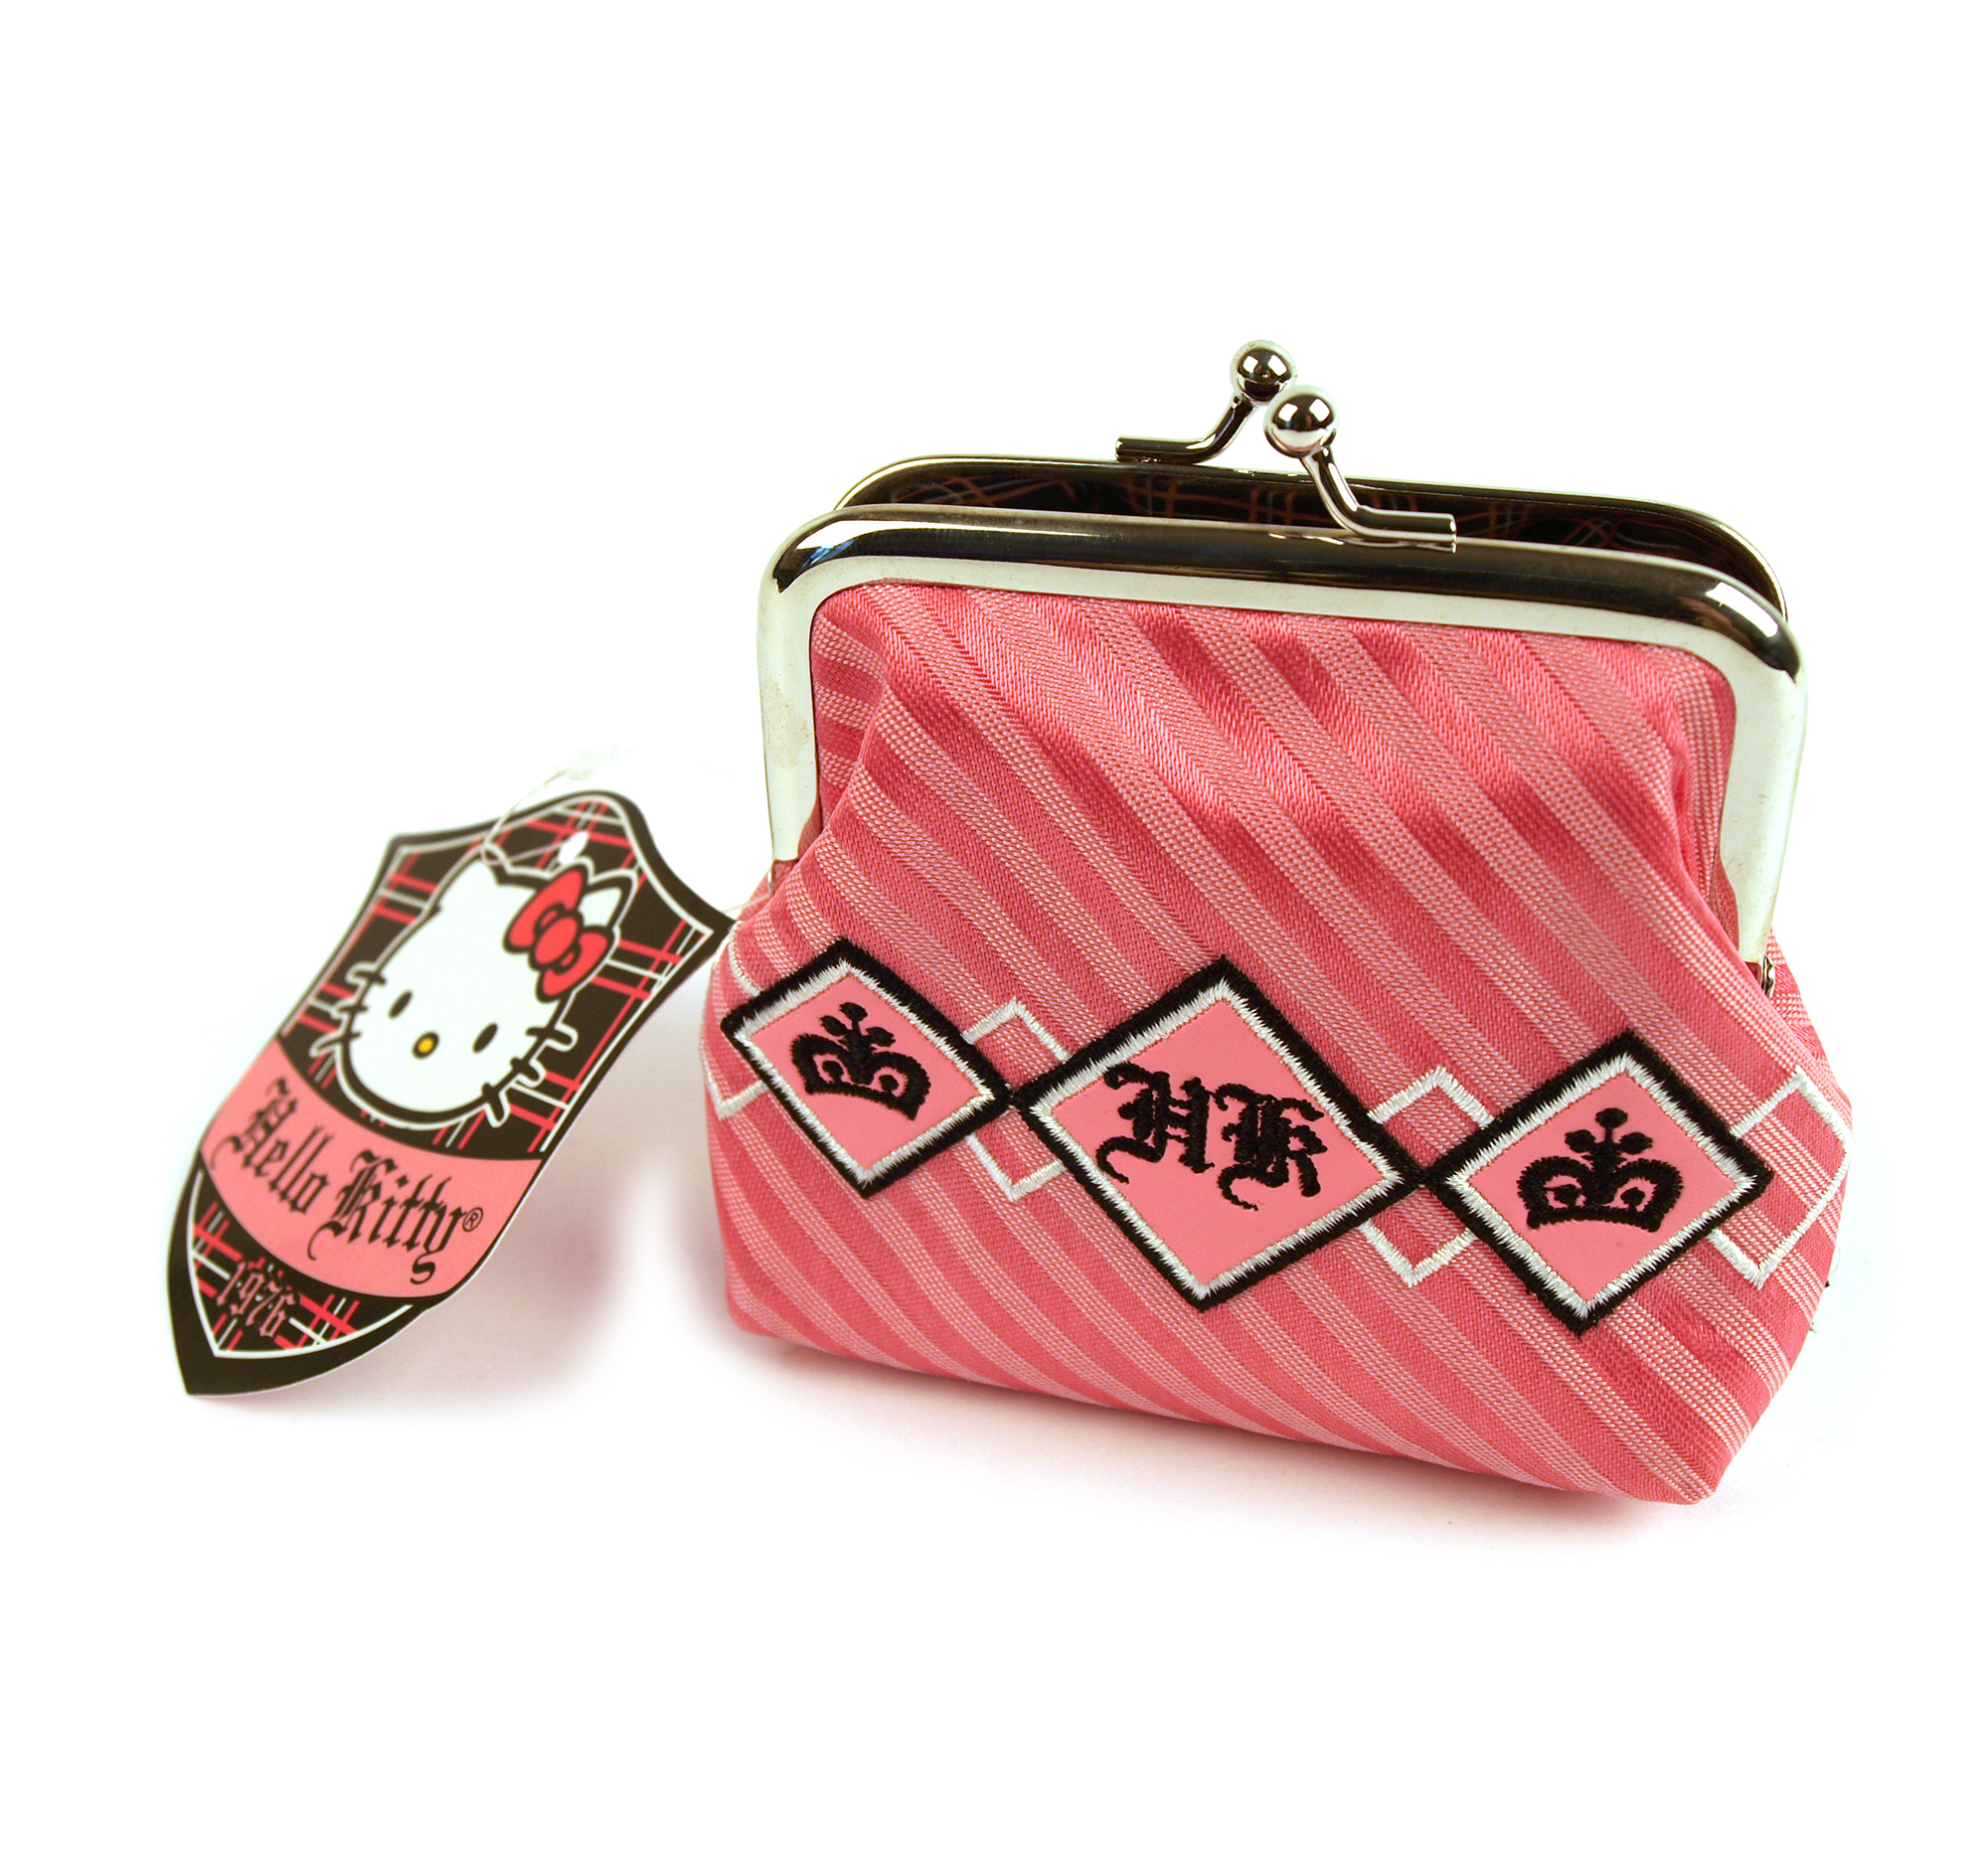 Hello Kitty Purse Whole Various High Quality Products From Global Suppliers And Factory Importer